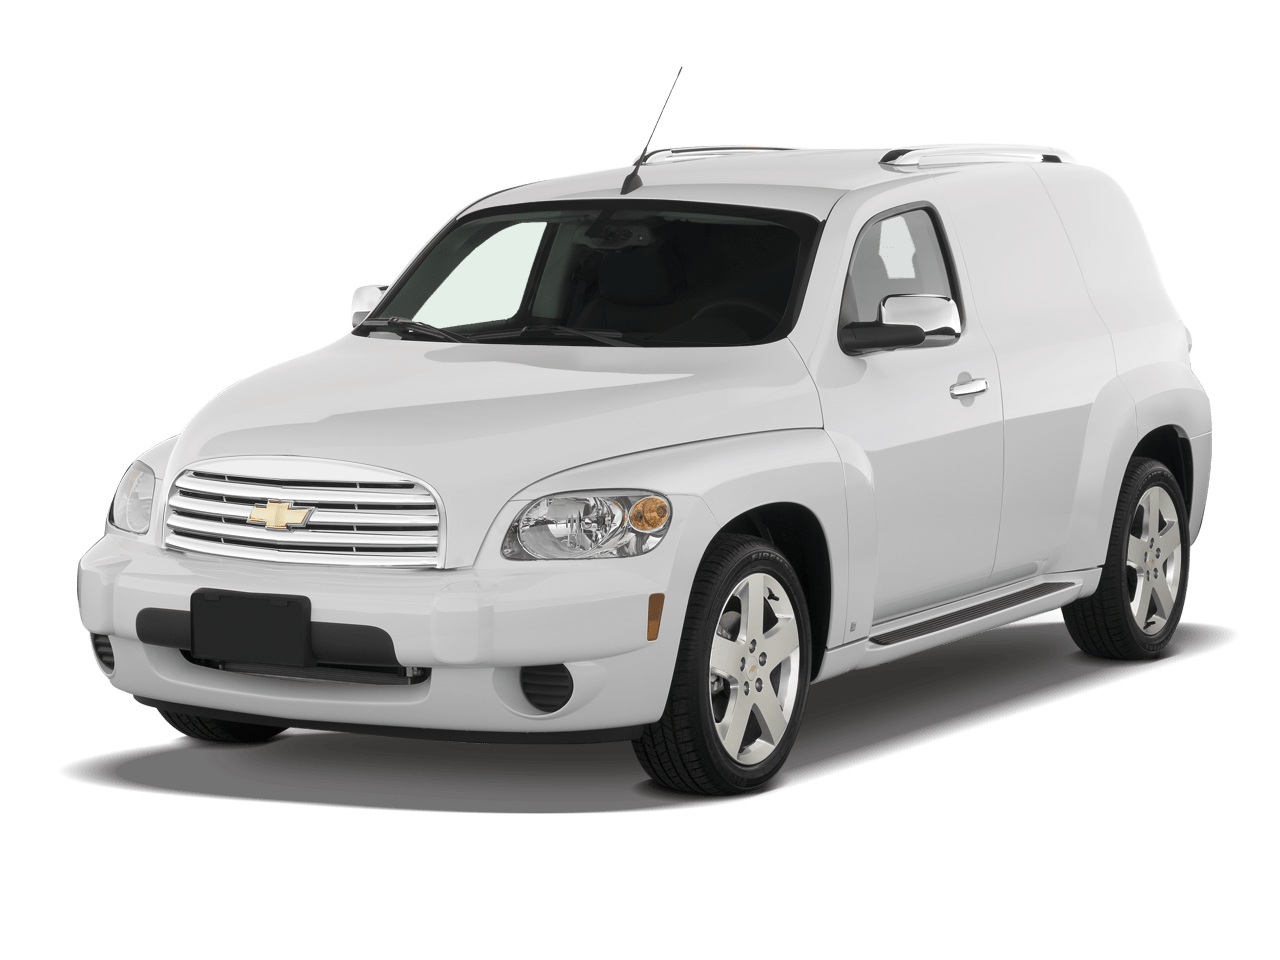 hight resolution of 2008 chevrolet hhr reviews research hhr prices specs diagram as well 2011 chevrolet hhr ls in addition honda civic type r